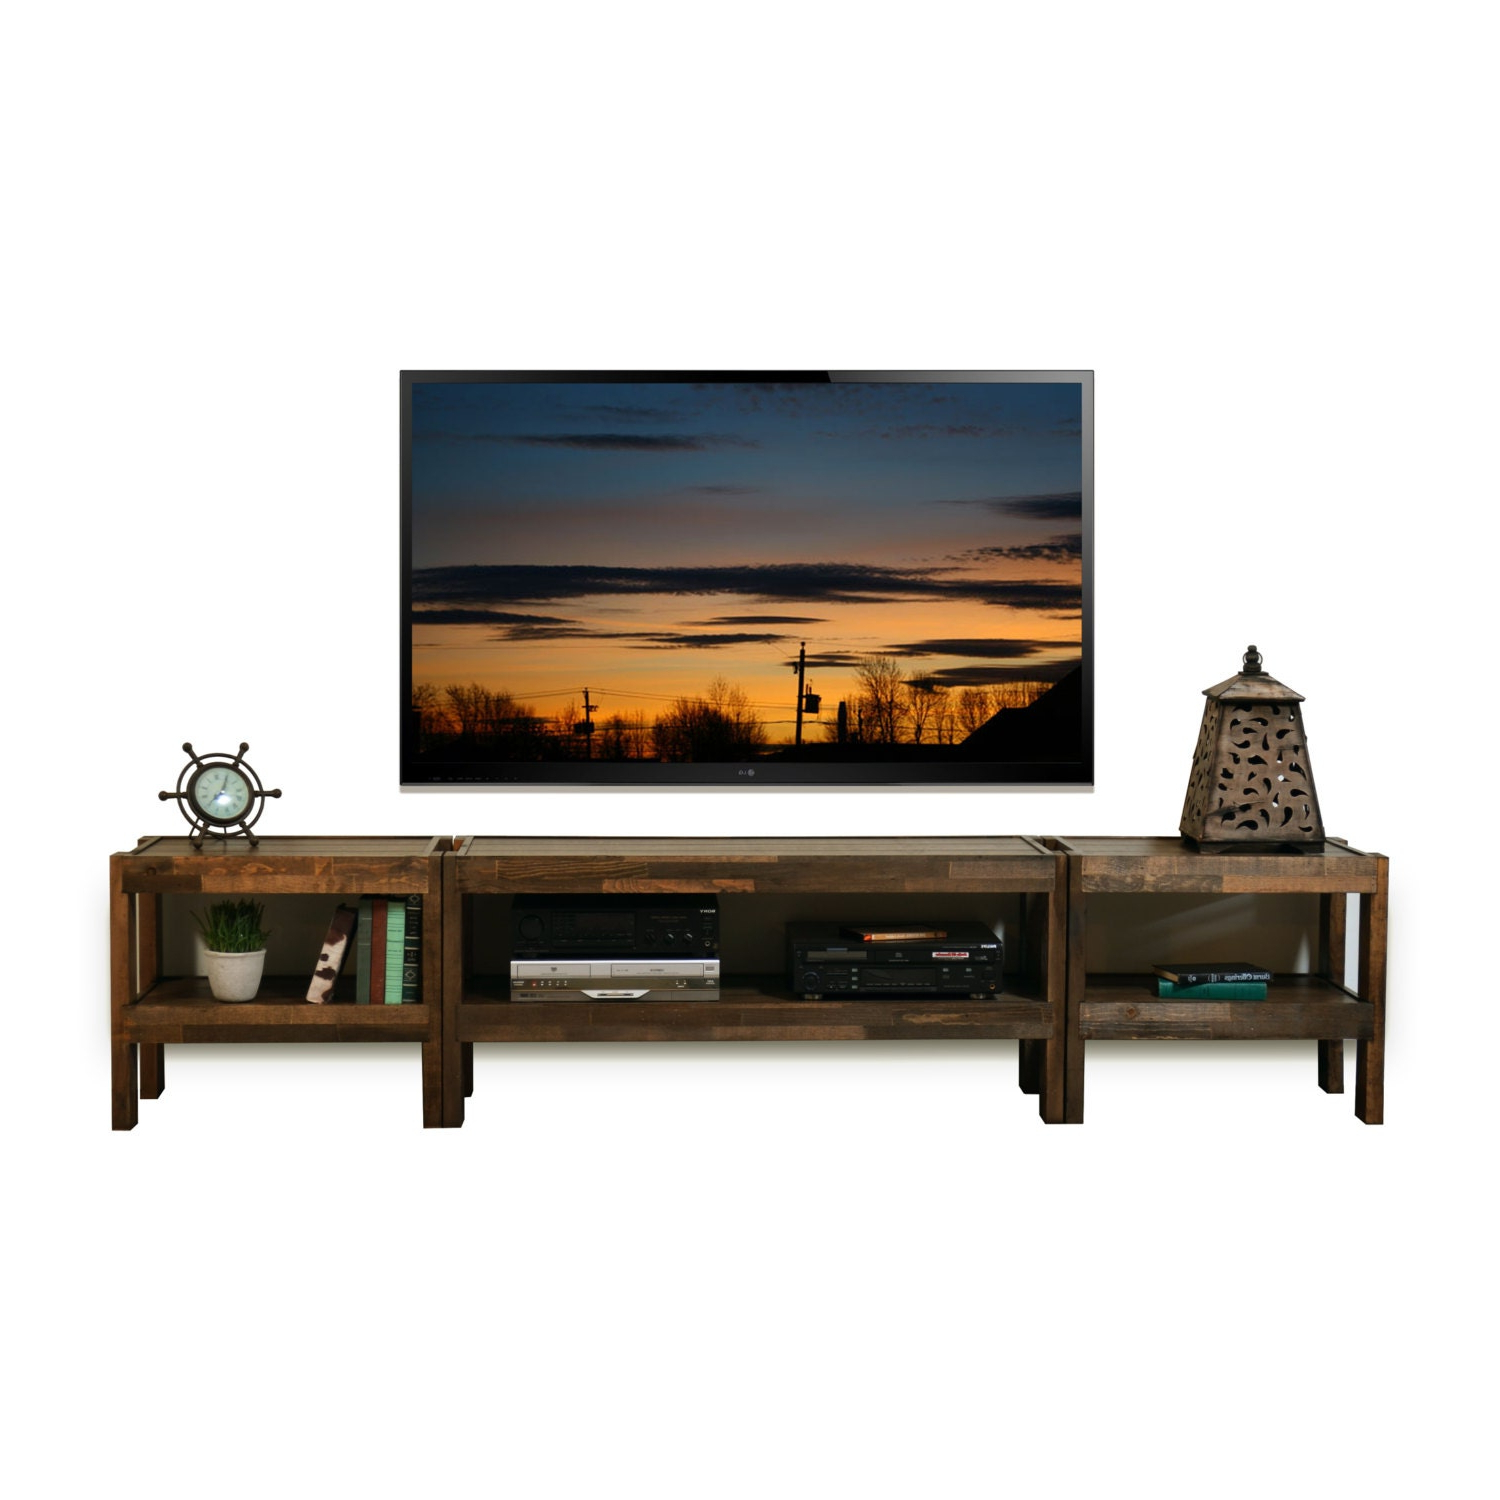 Reclaimed Wood Tv Stand Pallet Wood & Barn Wood In Popular Entertainment Center Tv Stands Reclaimed Barnwood (View 5 of 10)